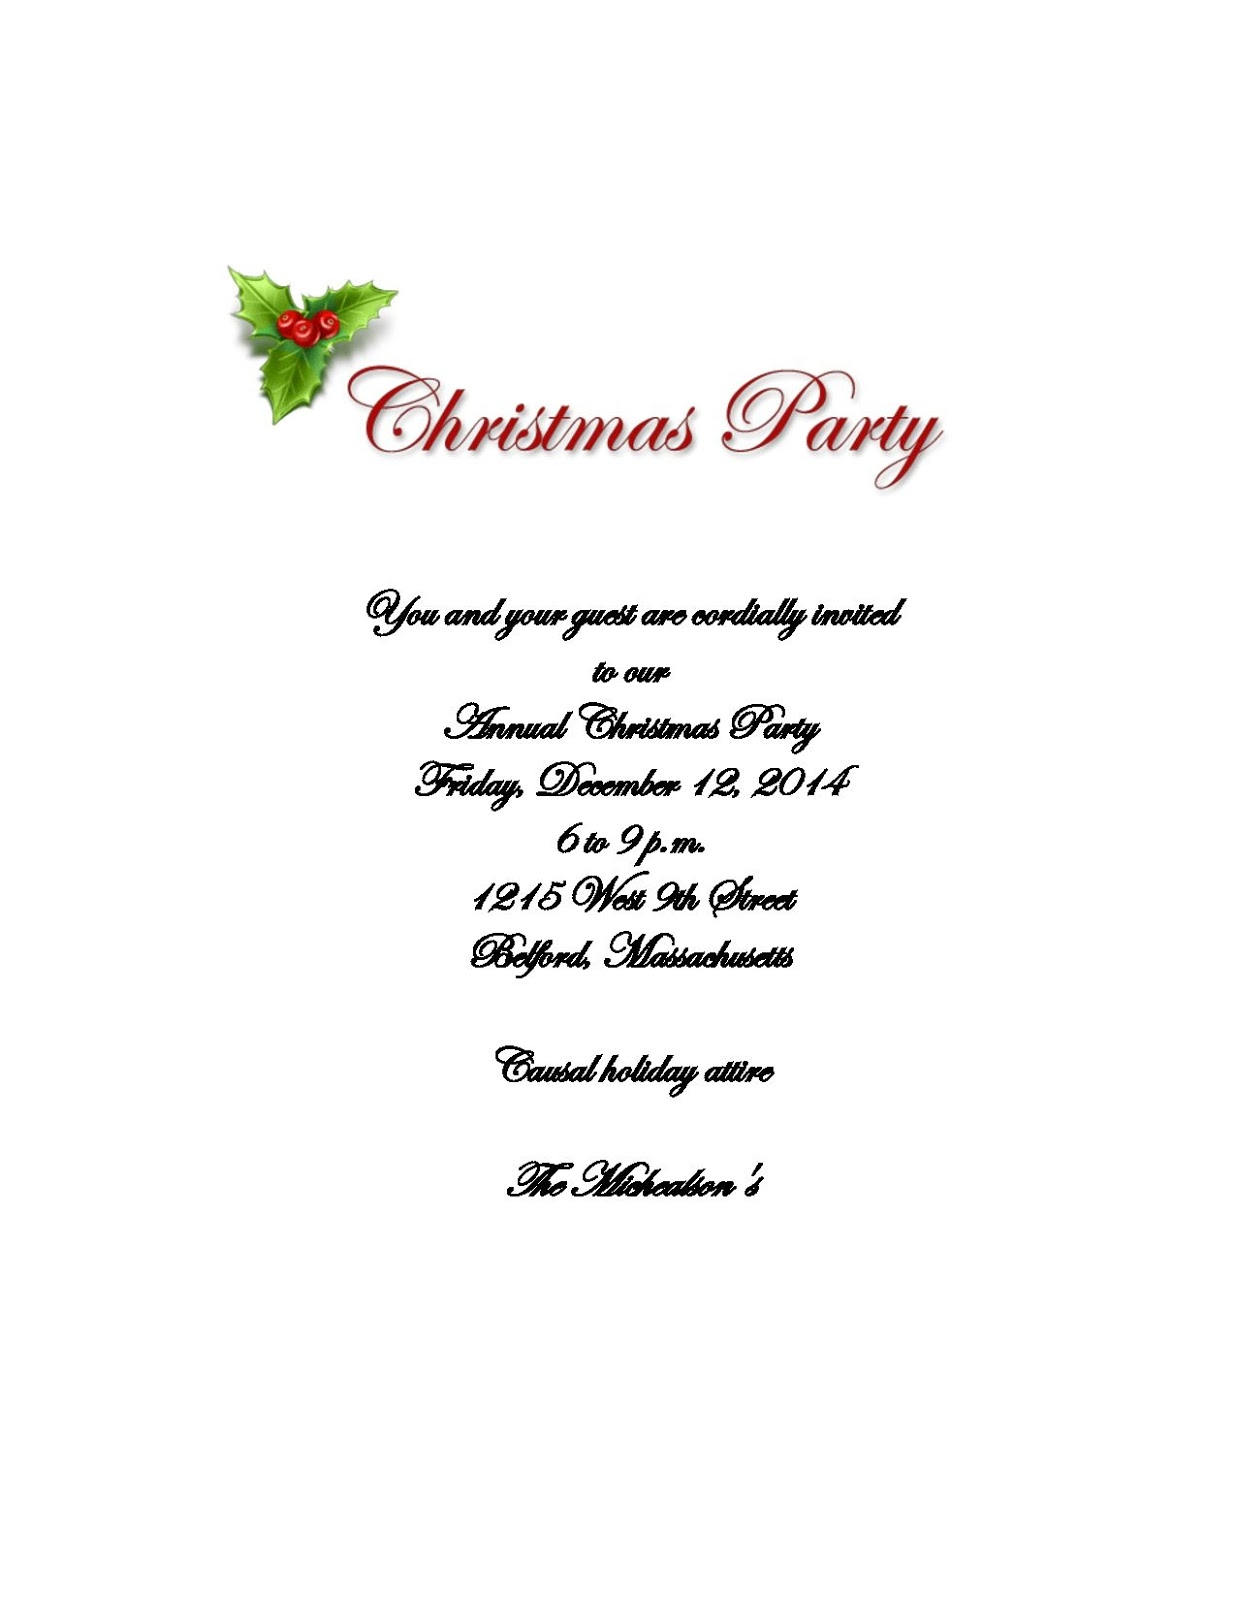 solicitation letter for christmas party - philippin news ...